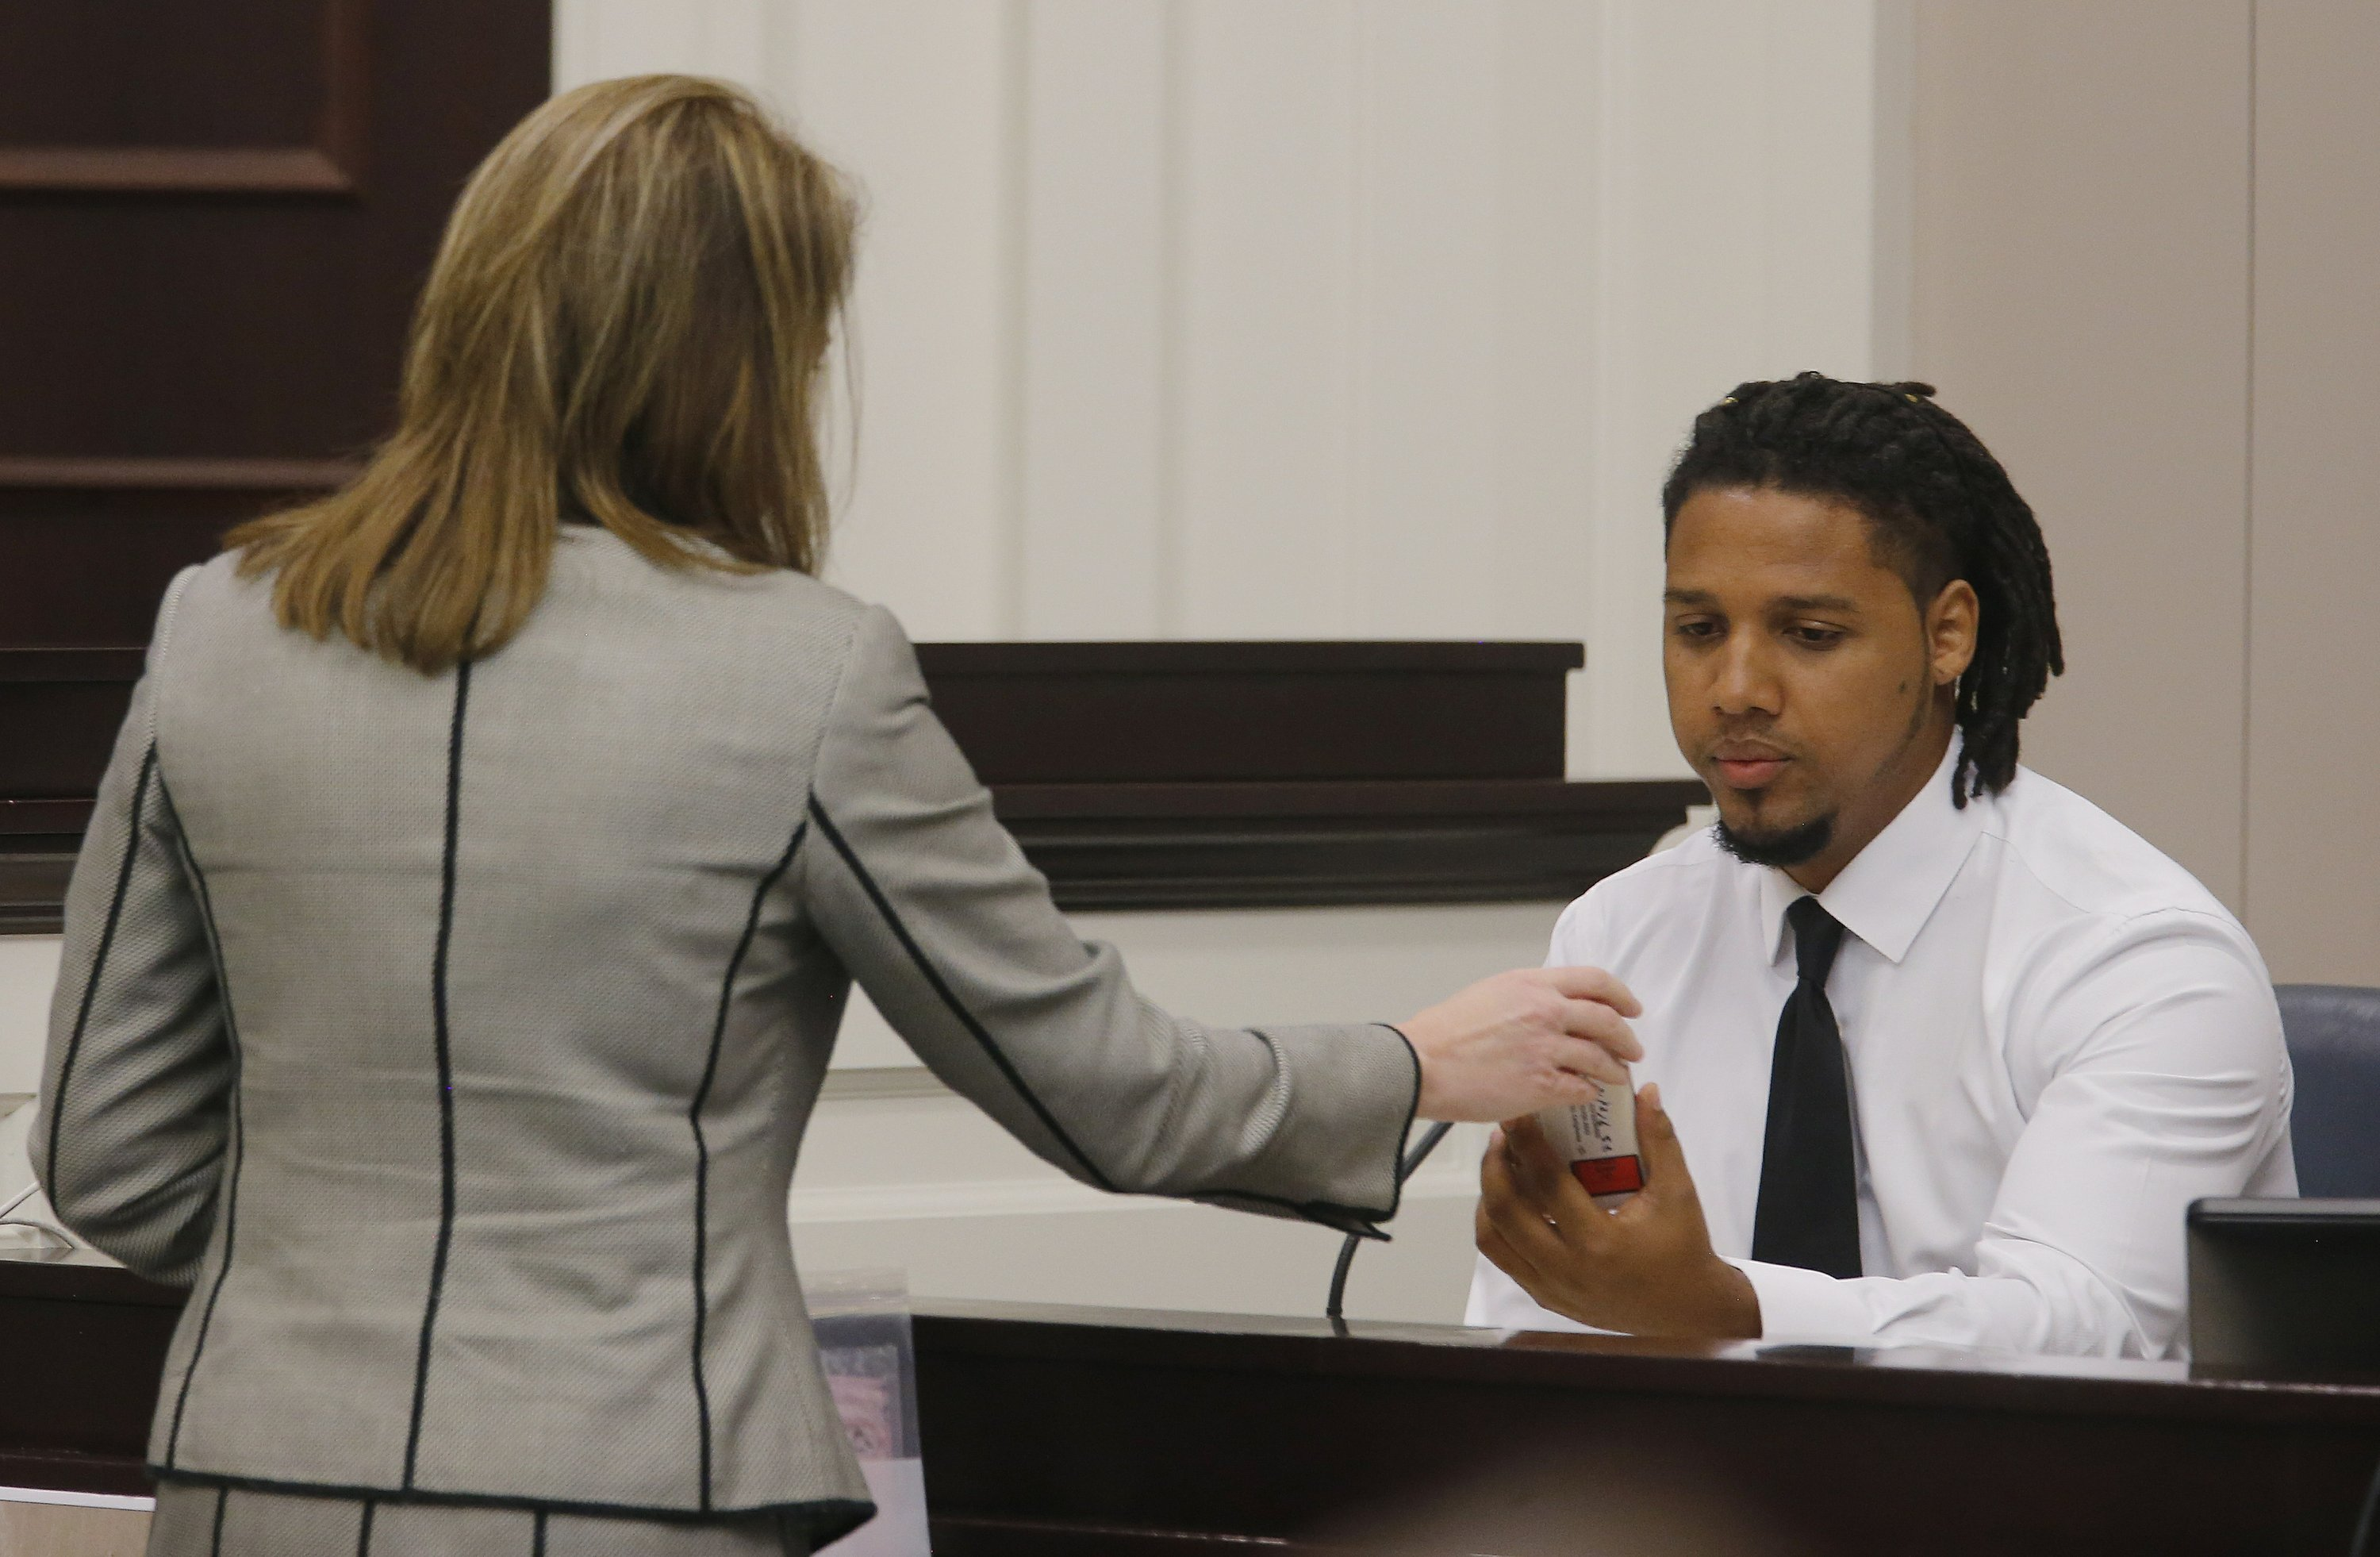 Jurors review video of officer killing unarmed fleeing man